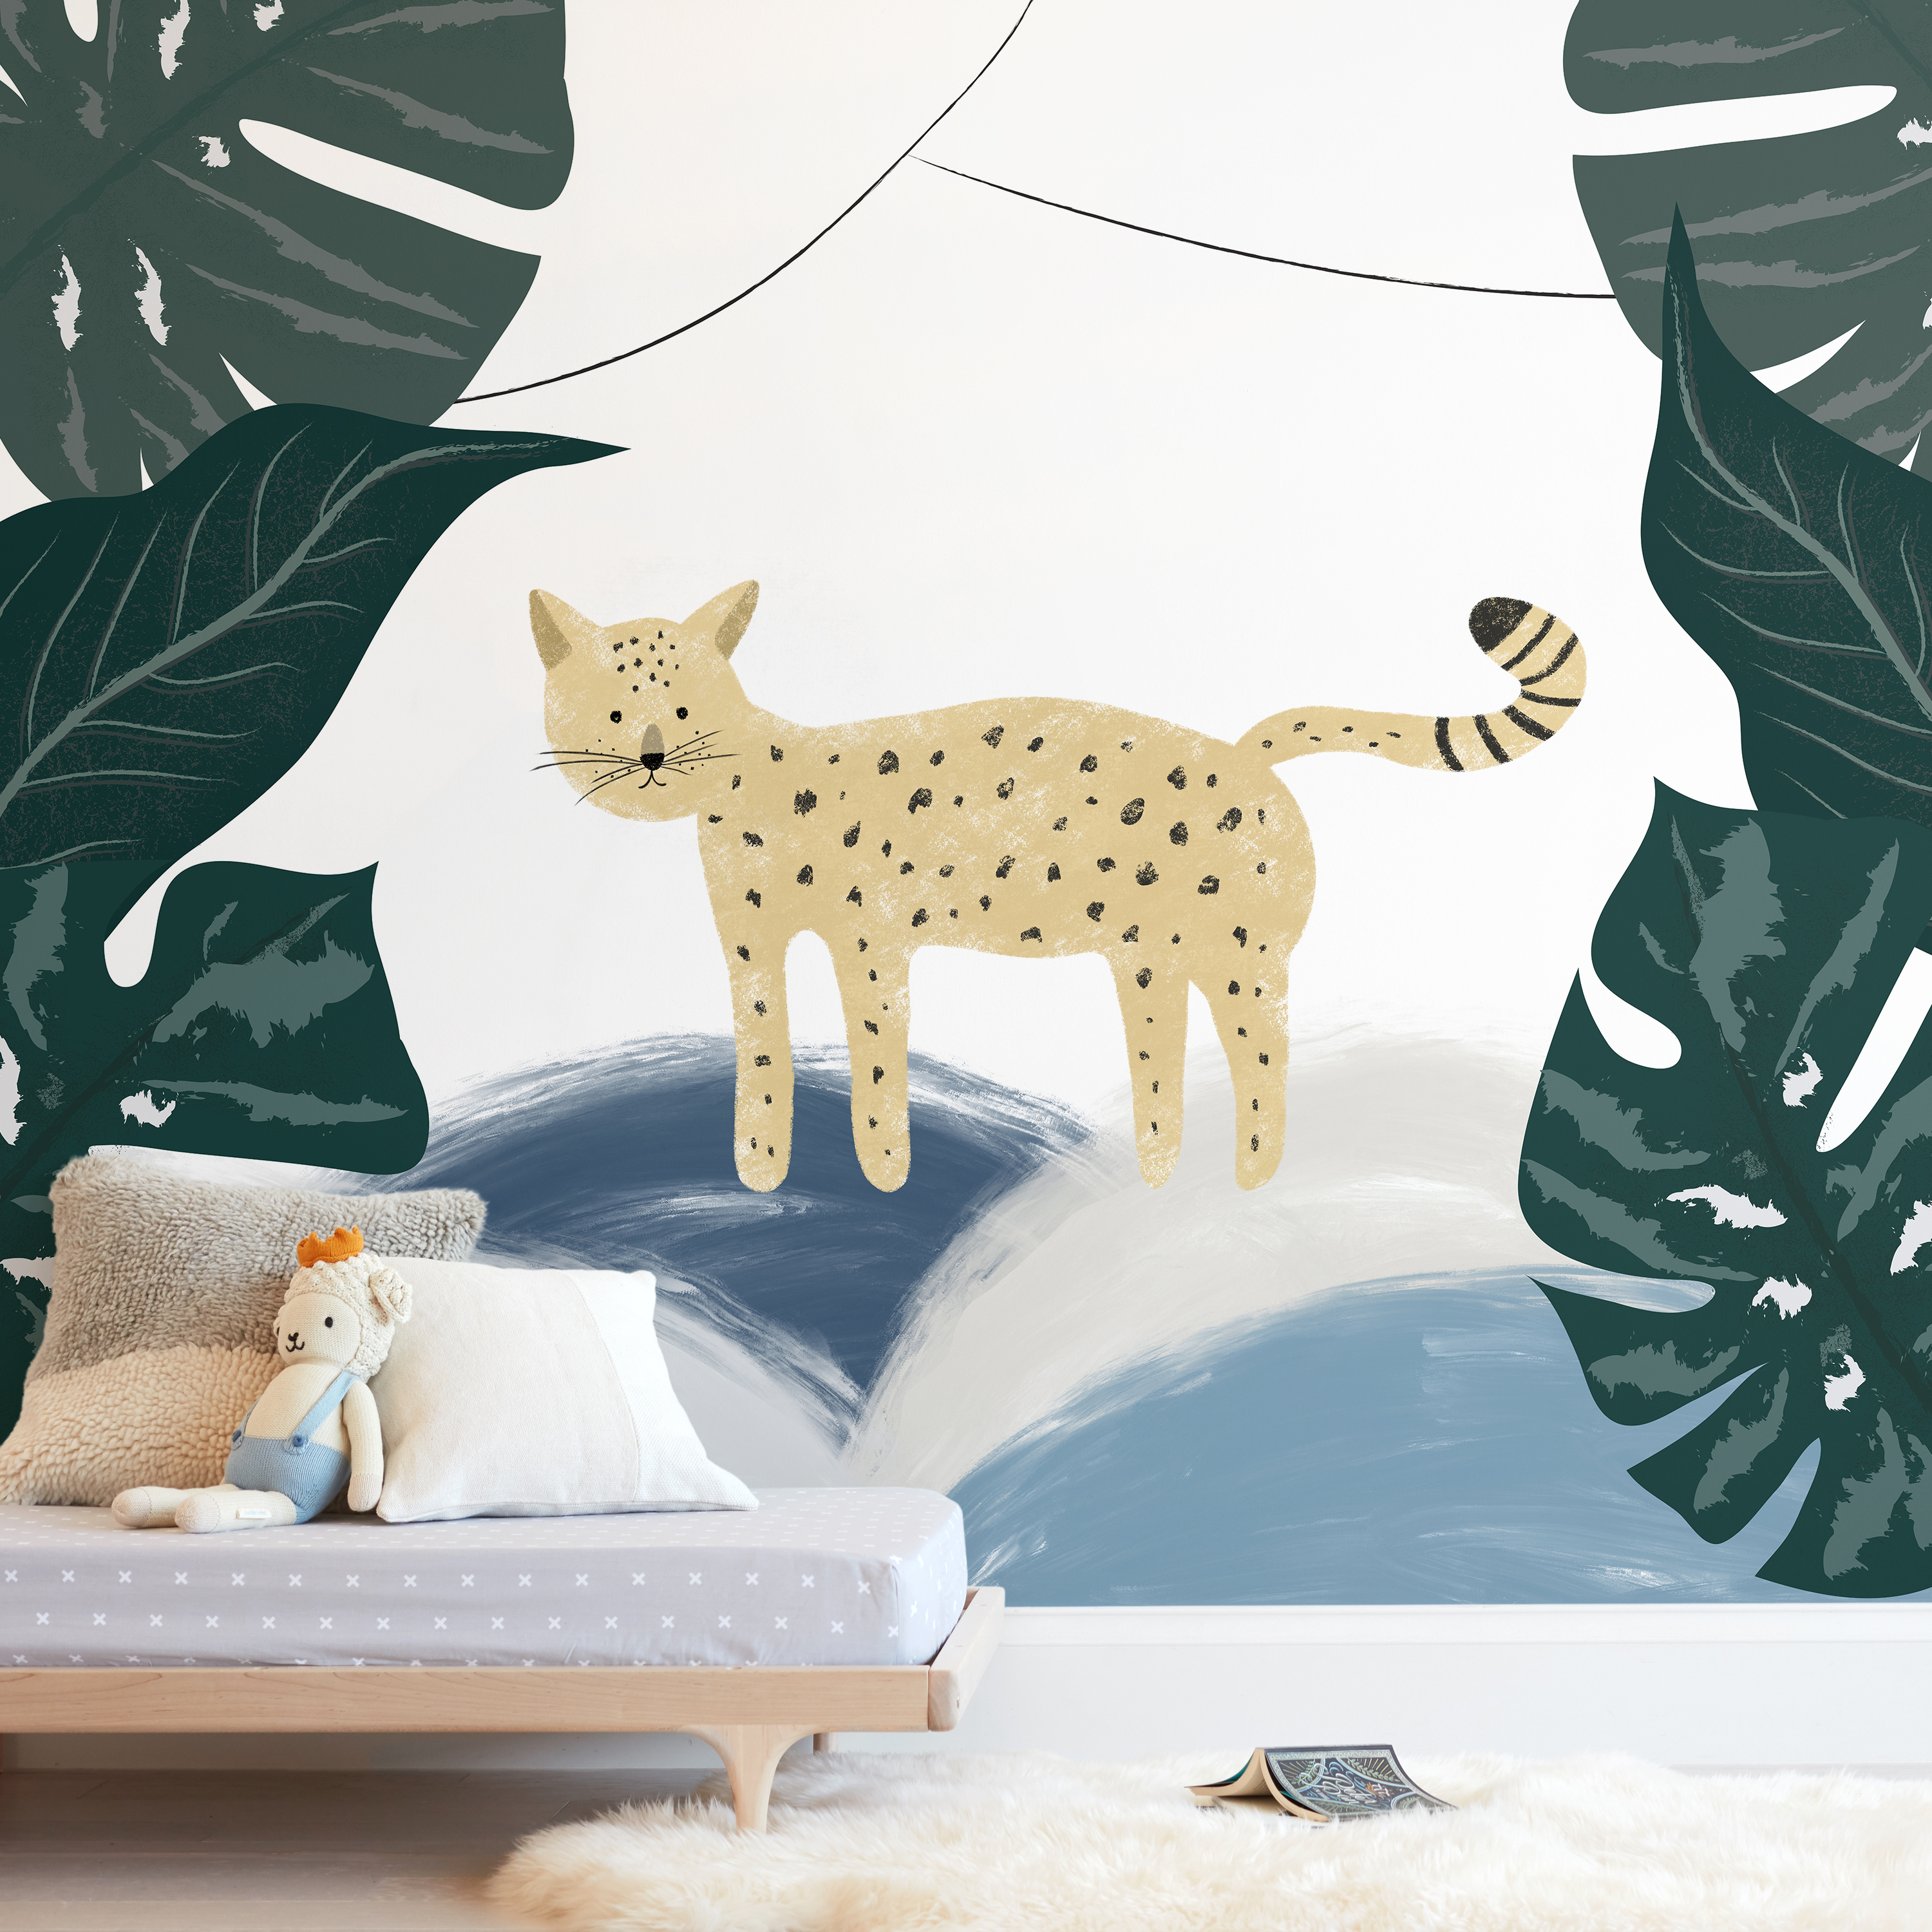 Meow Wall Mural